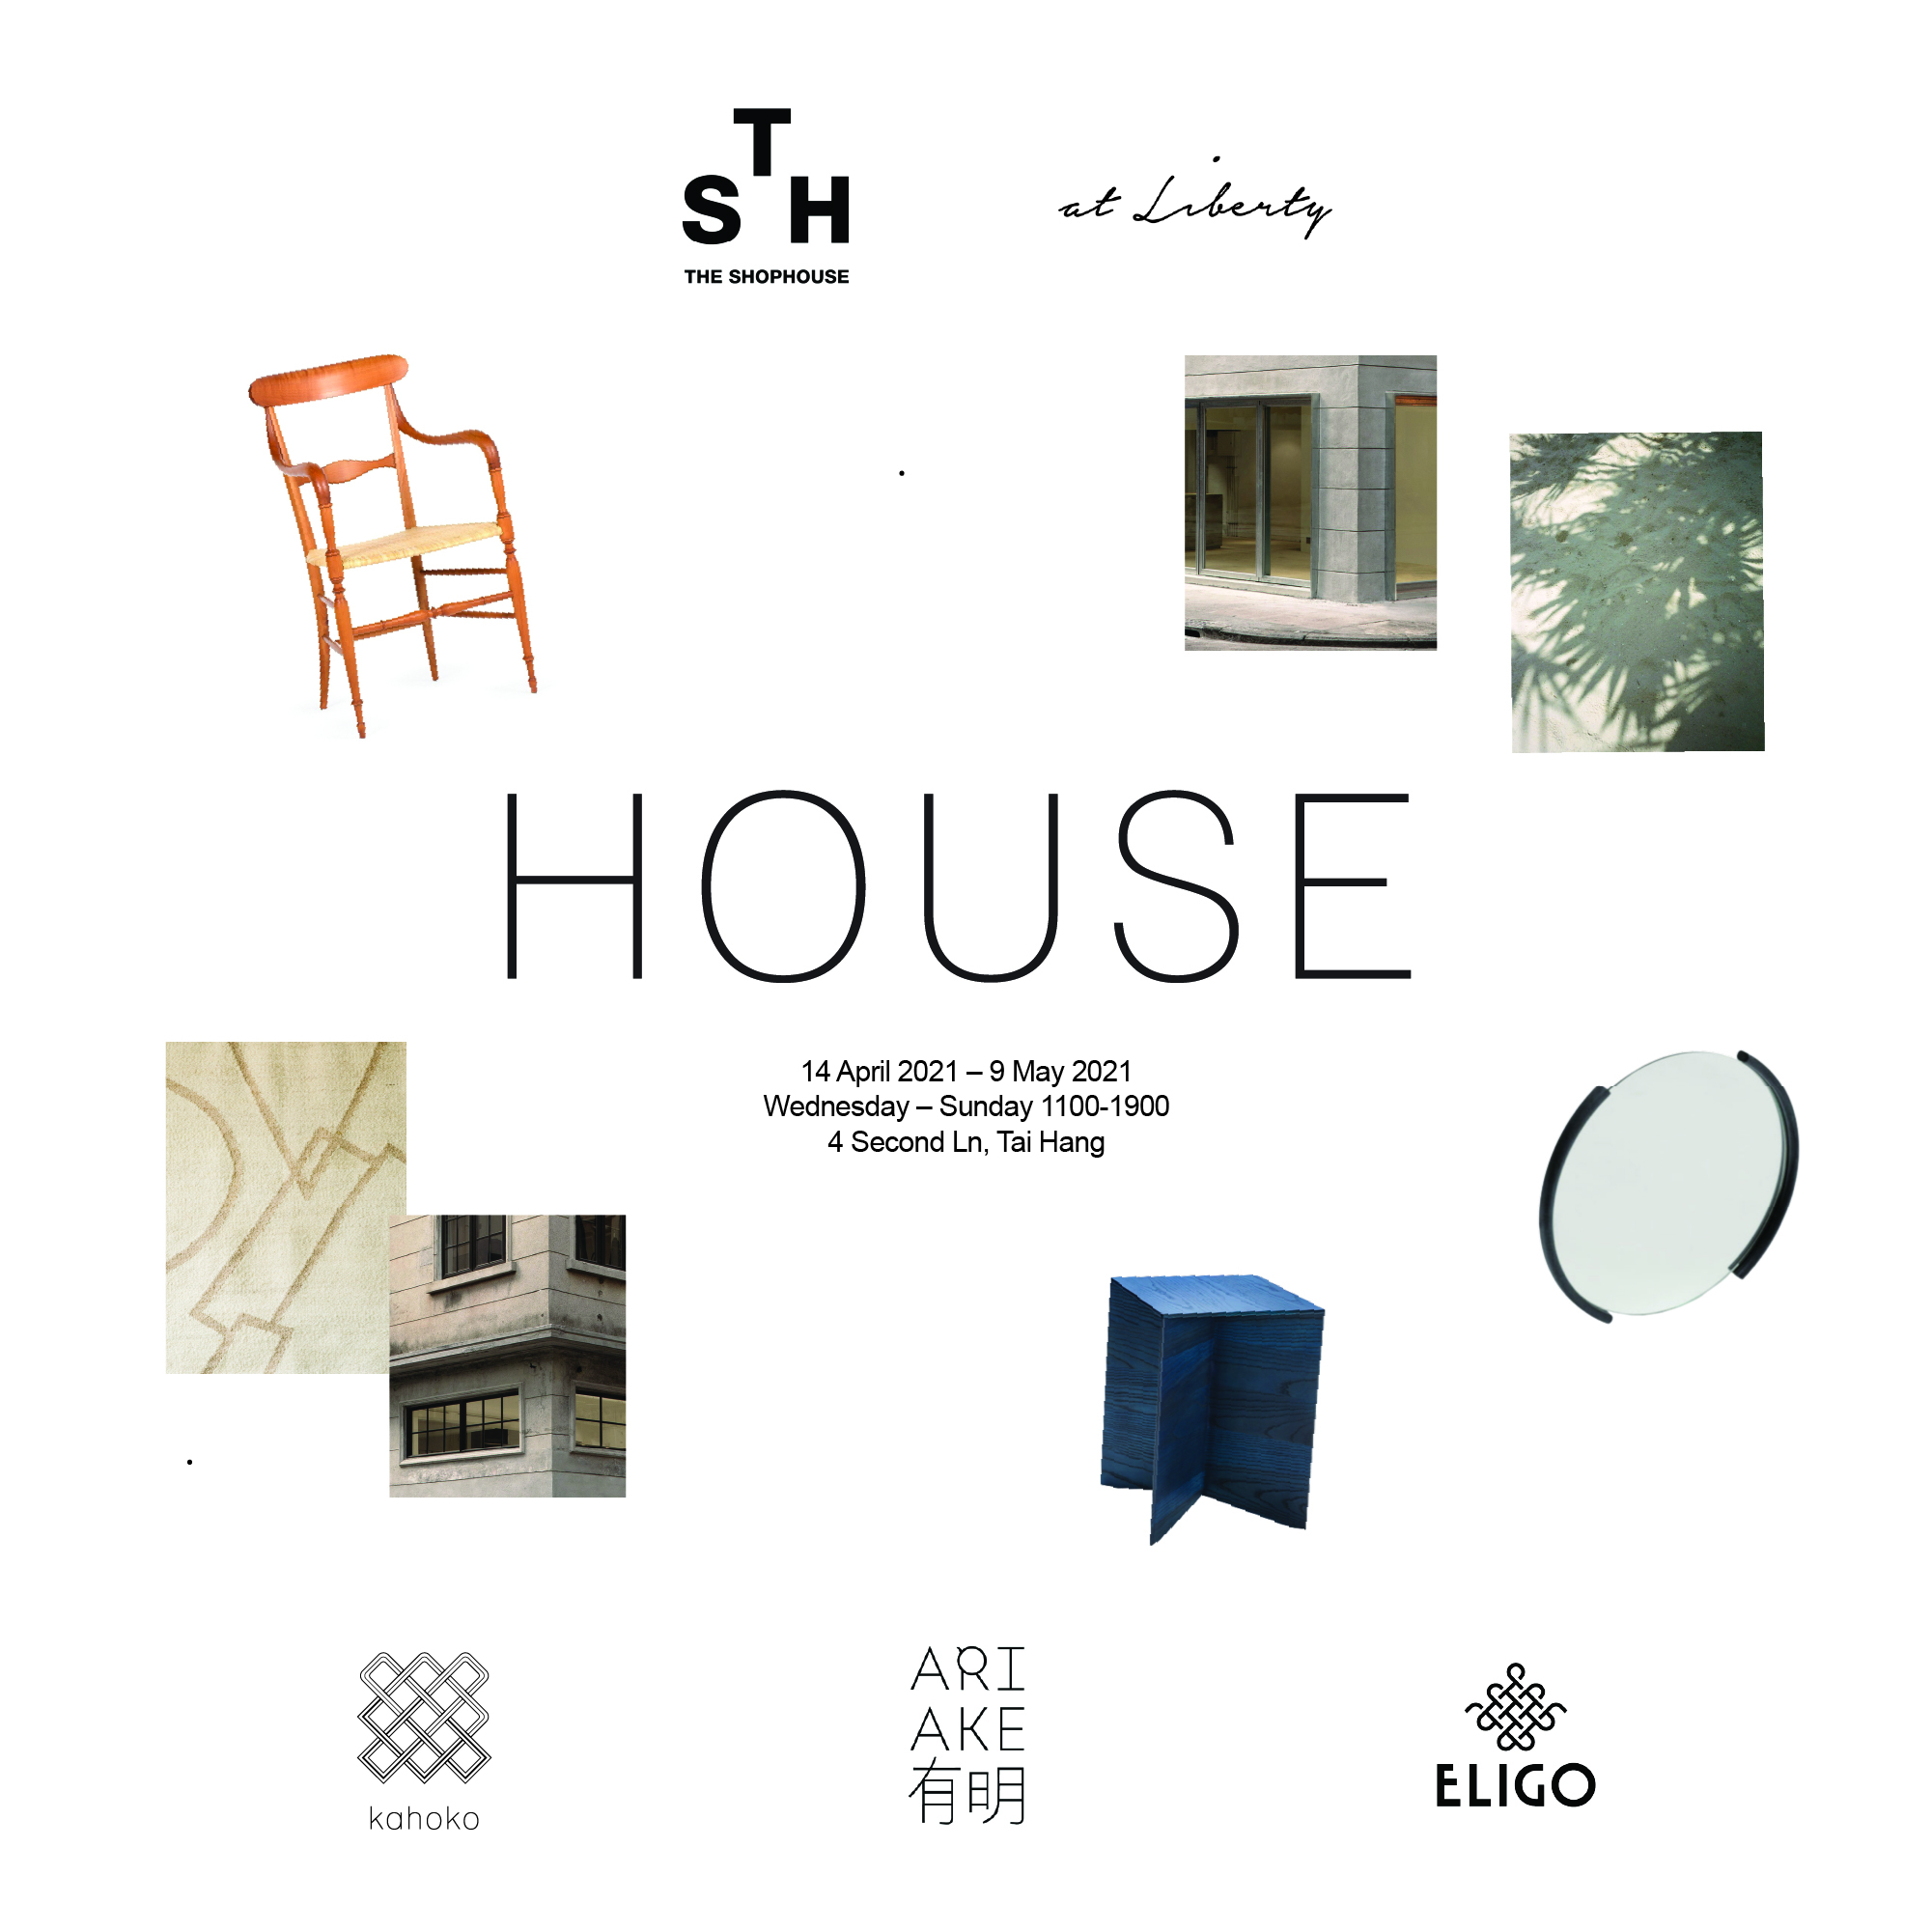 EVENT | 'HOUSE' BY THE SHOPHOUSE